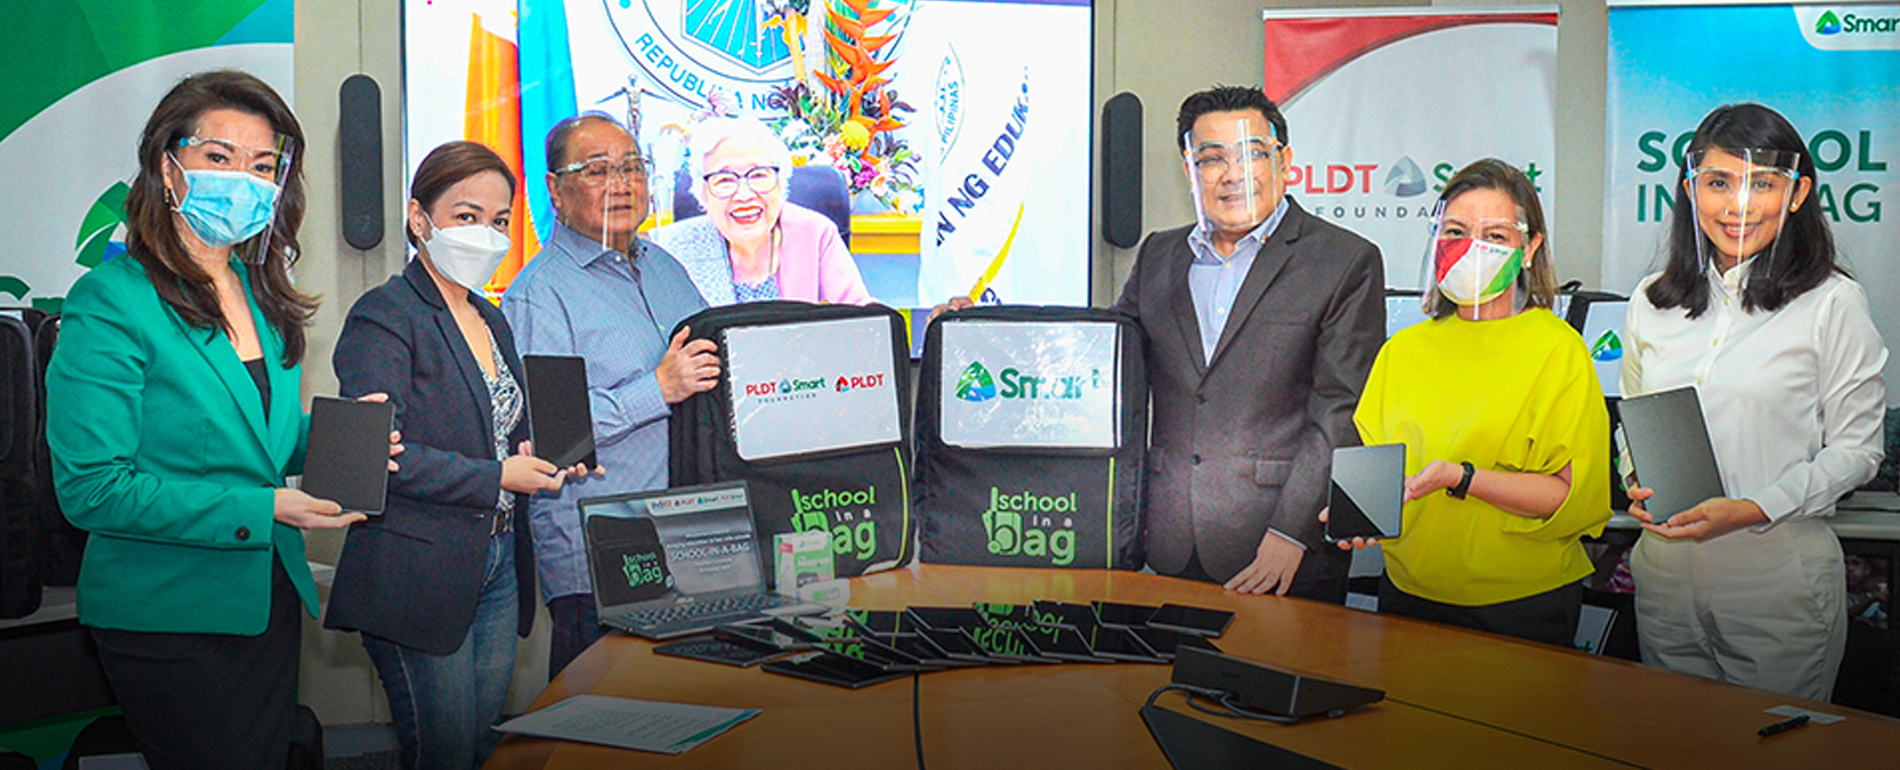 More teachers, learners to receive devices for distance learning through PLDT Group's School-in-a-Bag donation to DepEd